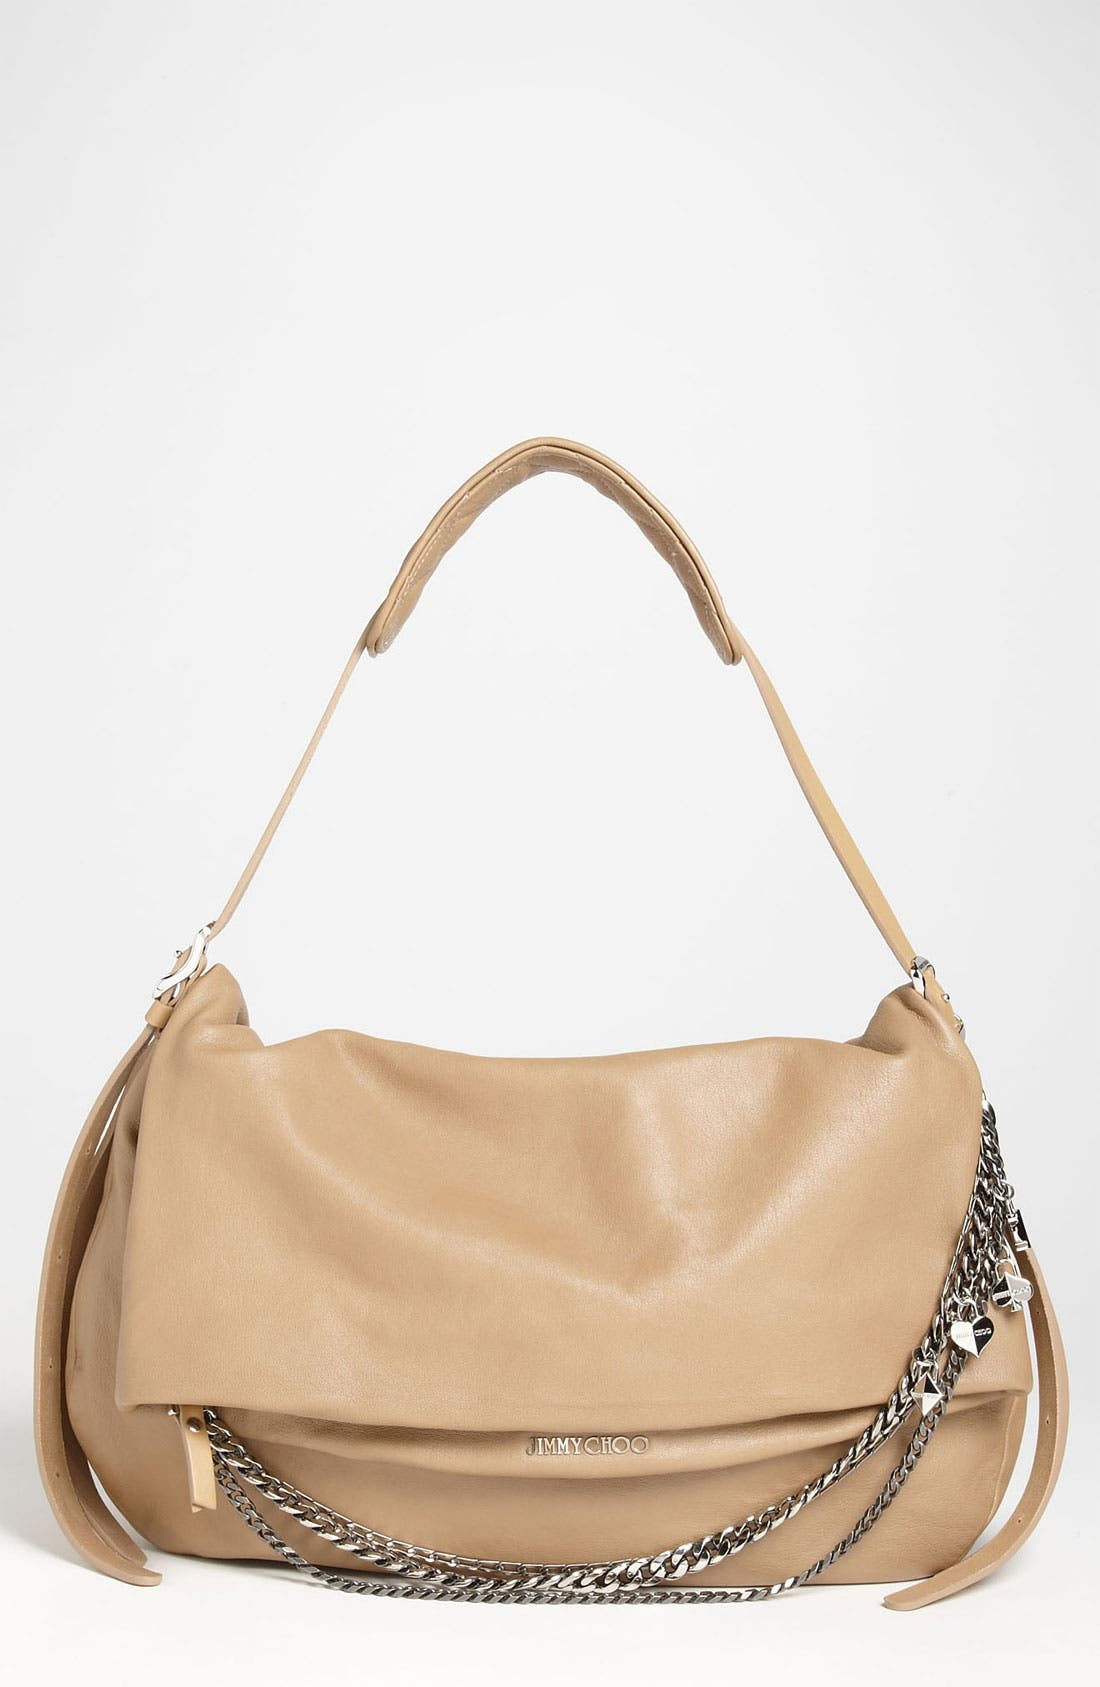 Alternate Image 1 Selected - Jimmy Choo 'Biker - Large' Leather Shoulder Bag